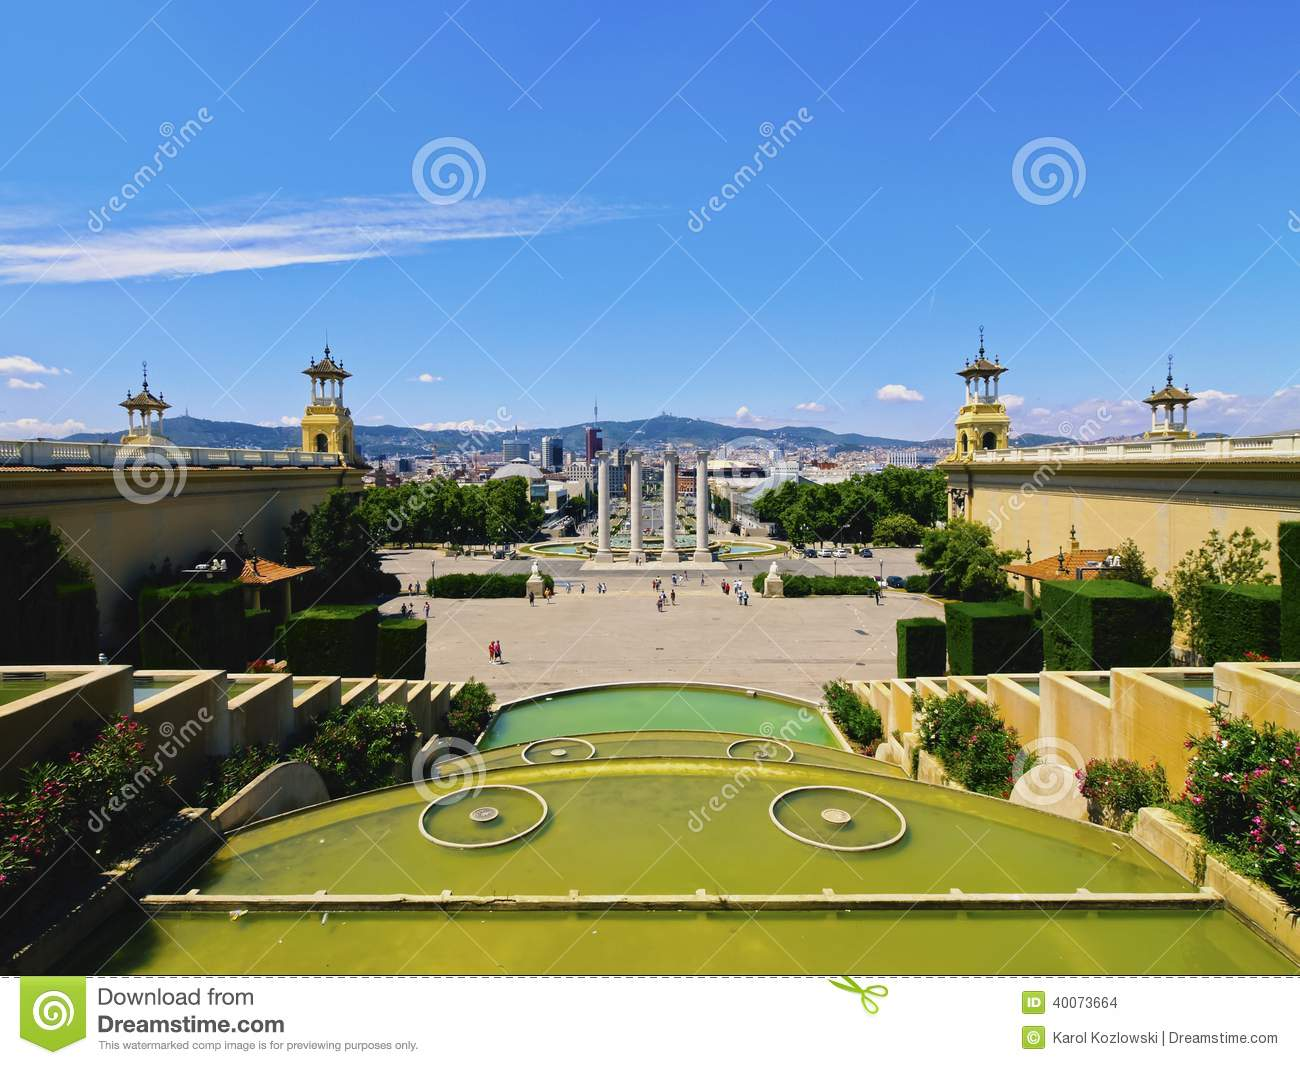 Download Placa Espanya in Barcelona stock photo. Image of city - 40073664